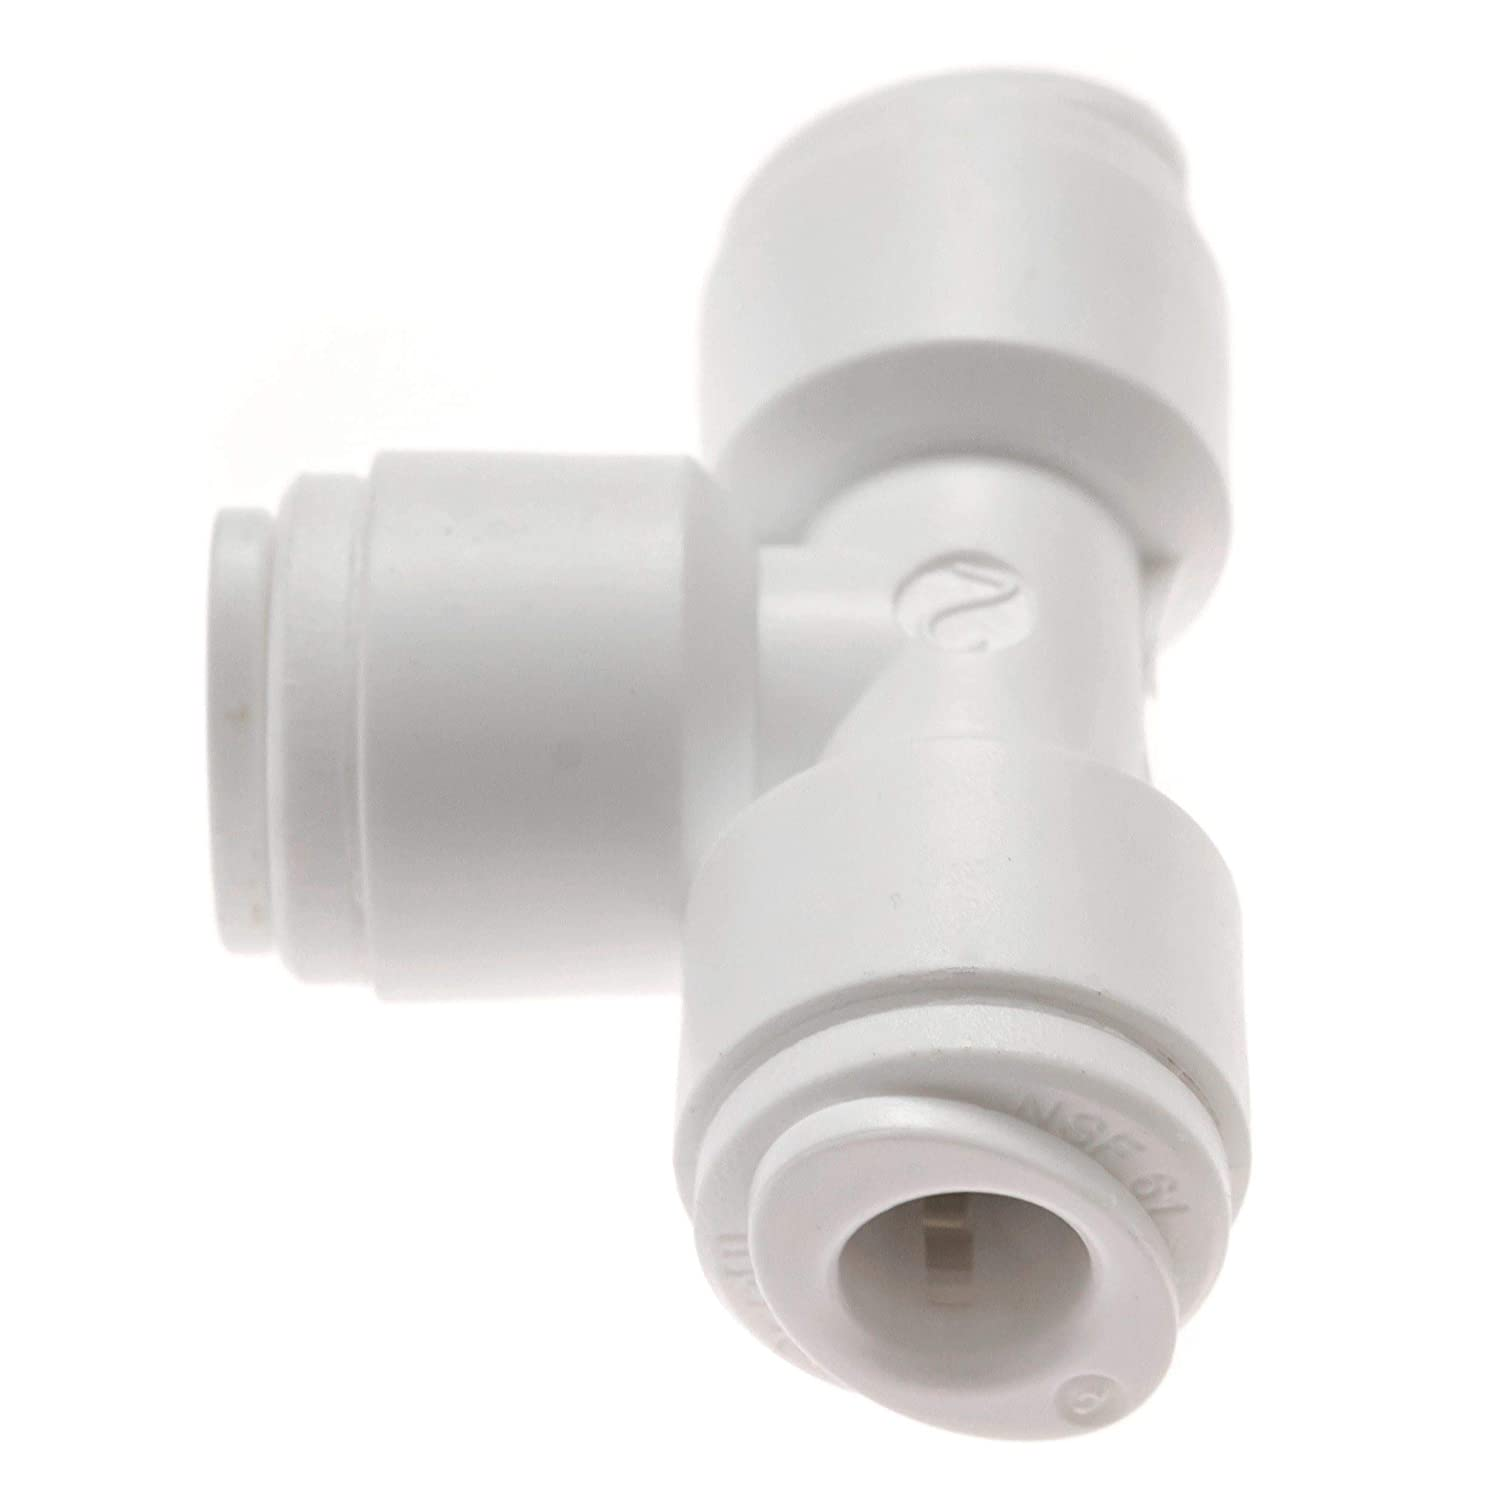 QF-UT04x3 1//4 x 1//4 x 1//4 tubes quick-connect fittings Pack of 3 Avanti 1//4 3-way Union Tee Fitting for drinking water filter RO reverse osmosis Avanti Membrane Technology